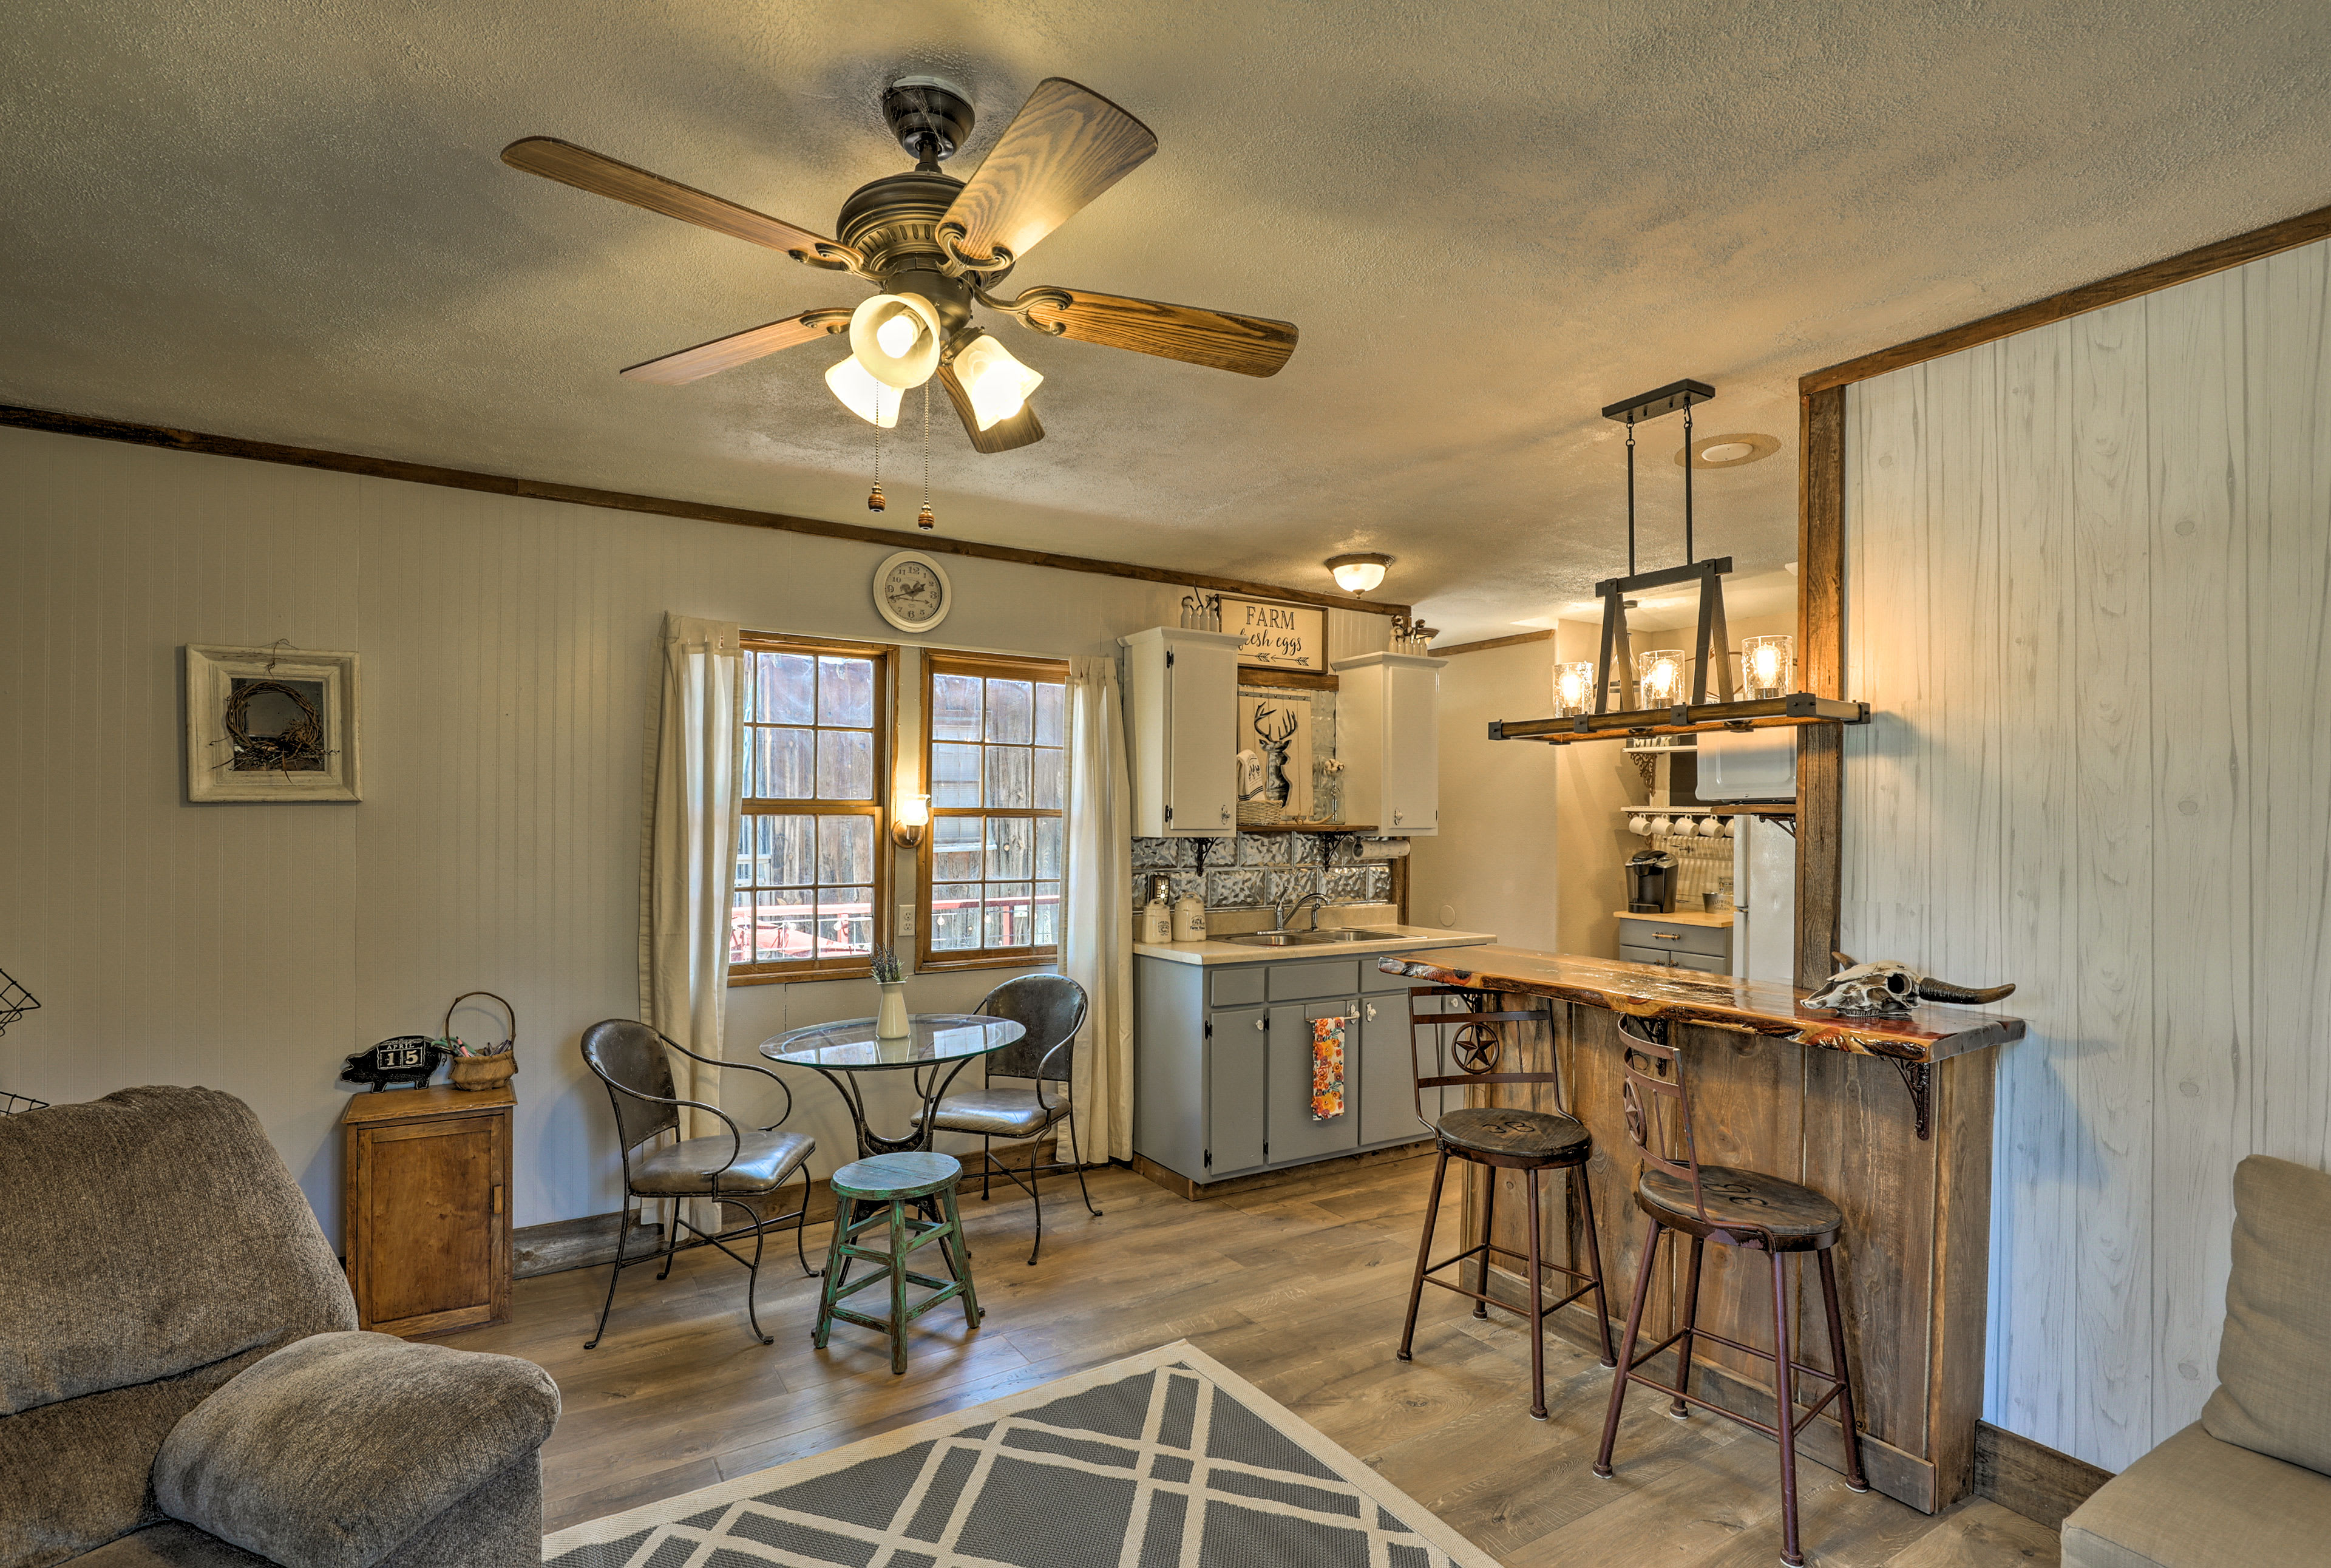 The wood accents enhance a cozy mountian charm.